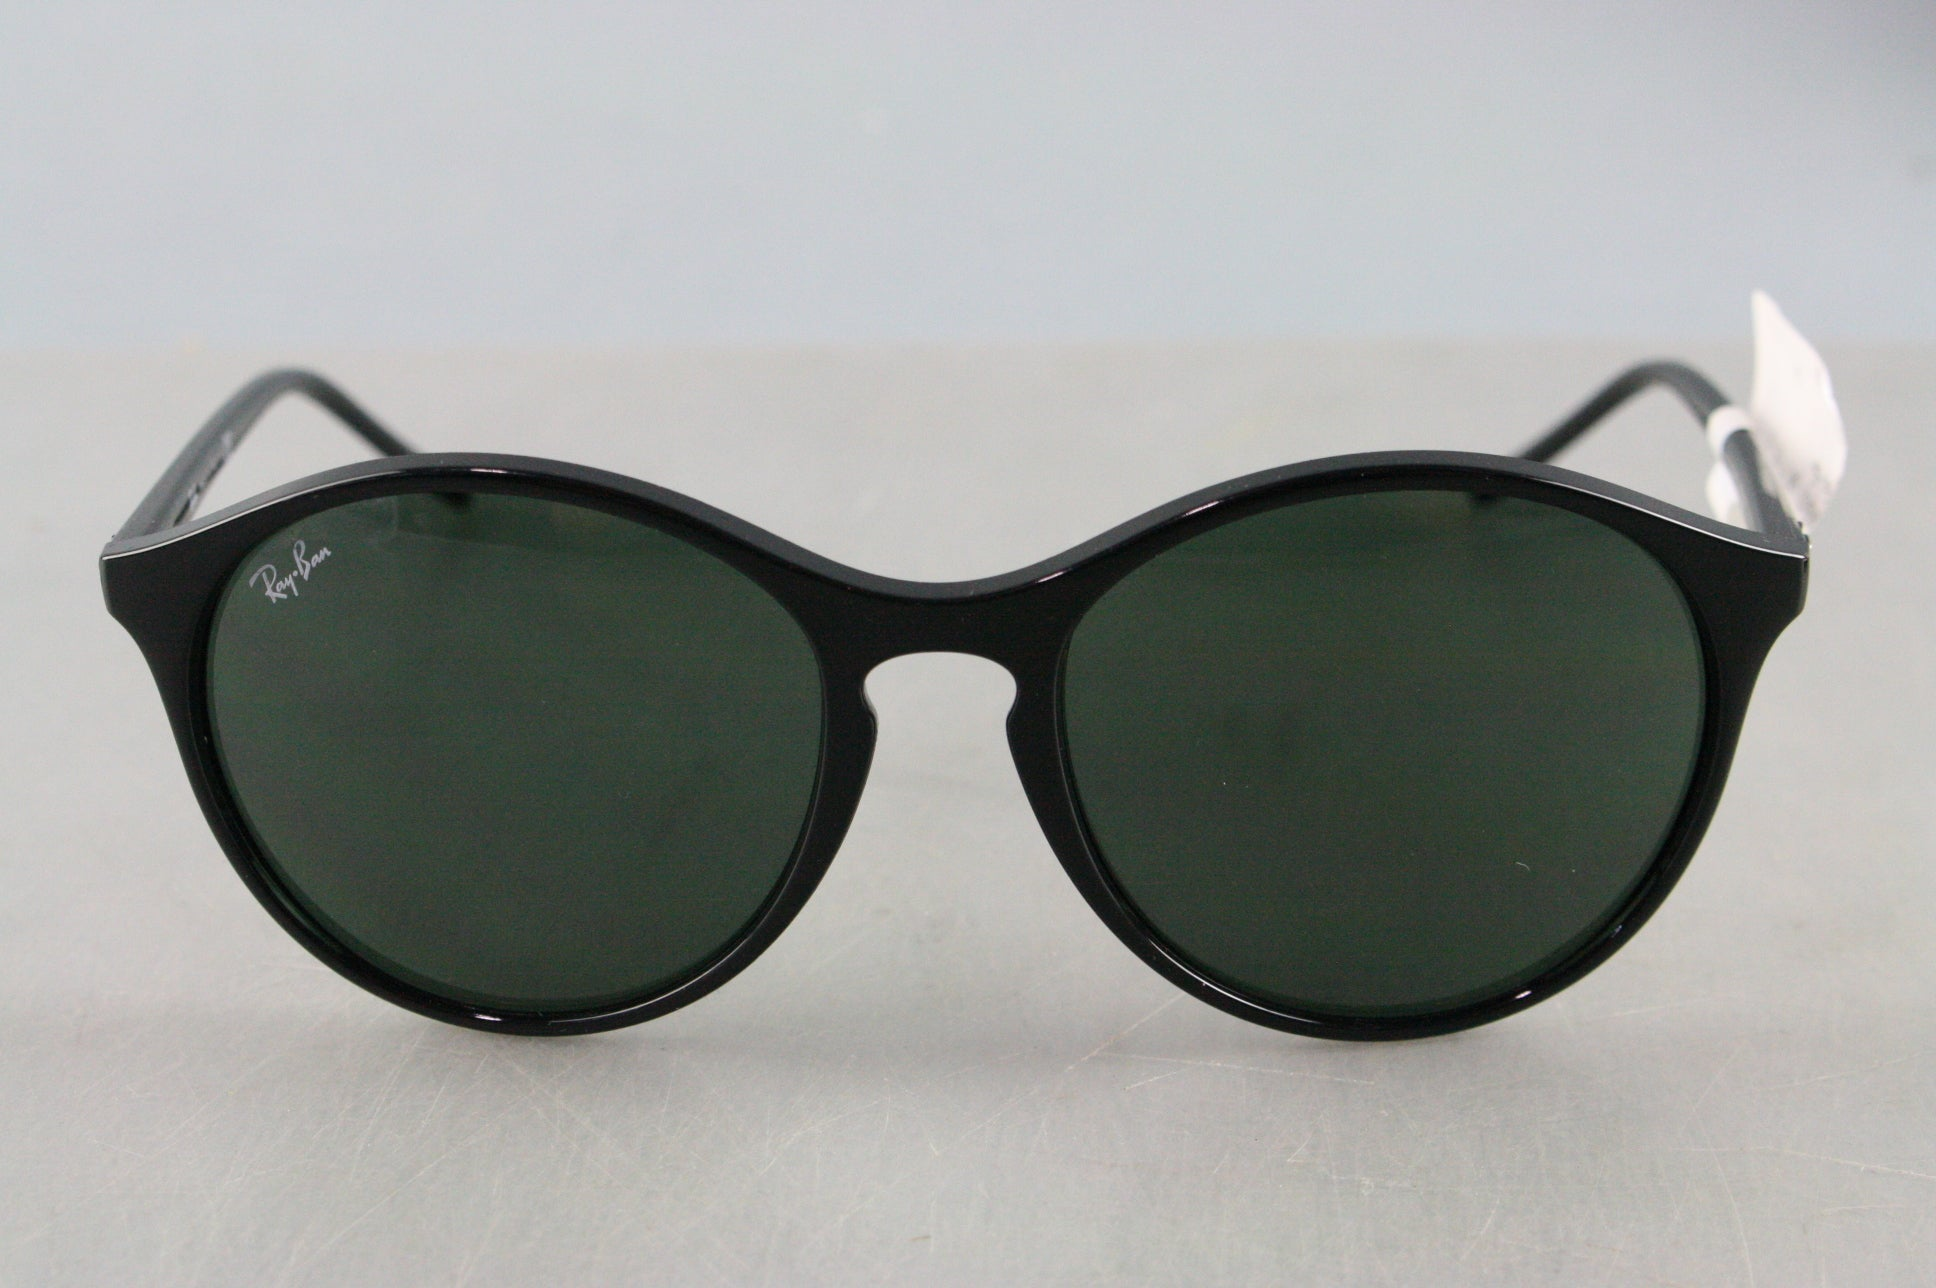 NEW Ray Ban Highstreet Women Sunglasses RB4371 601/71 55 Black / Green Classic